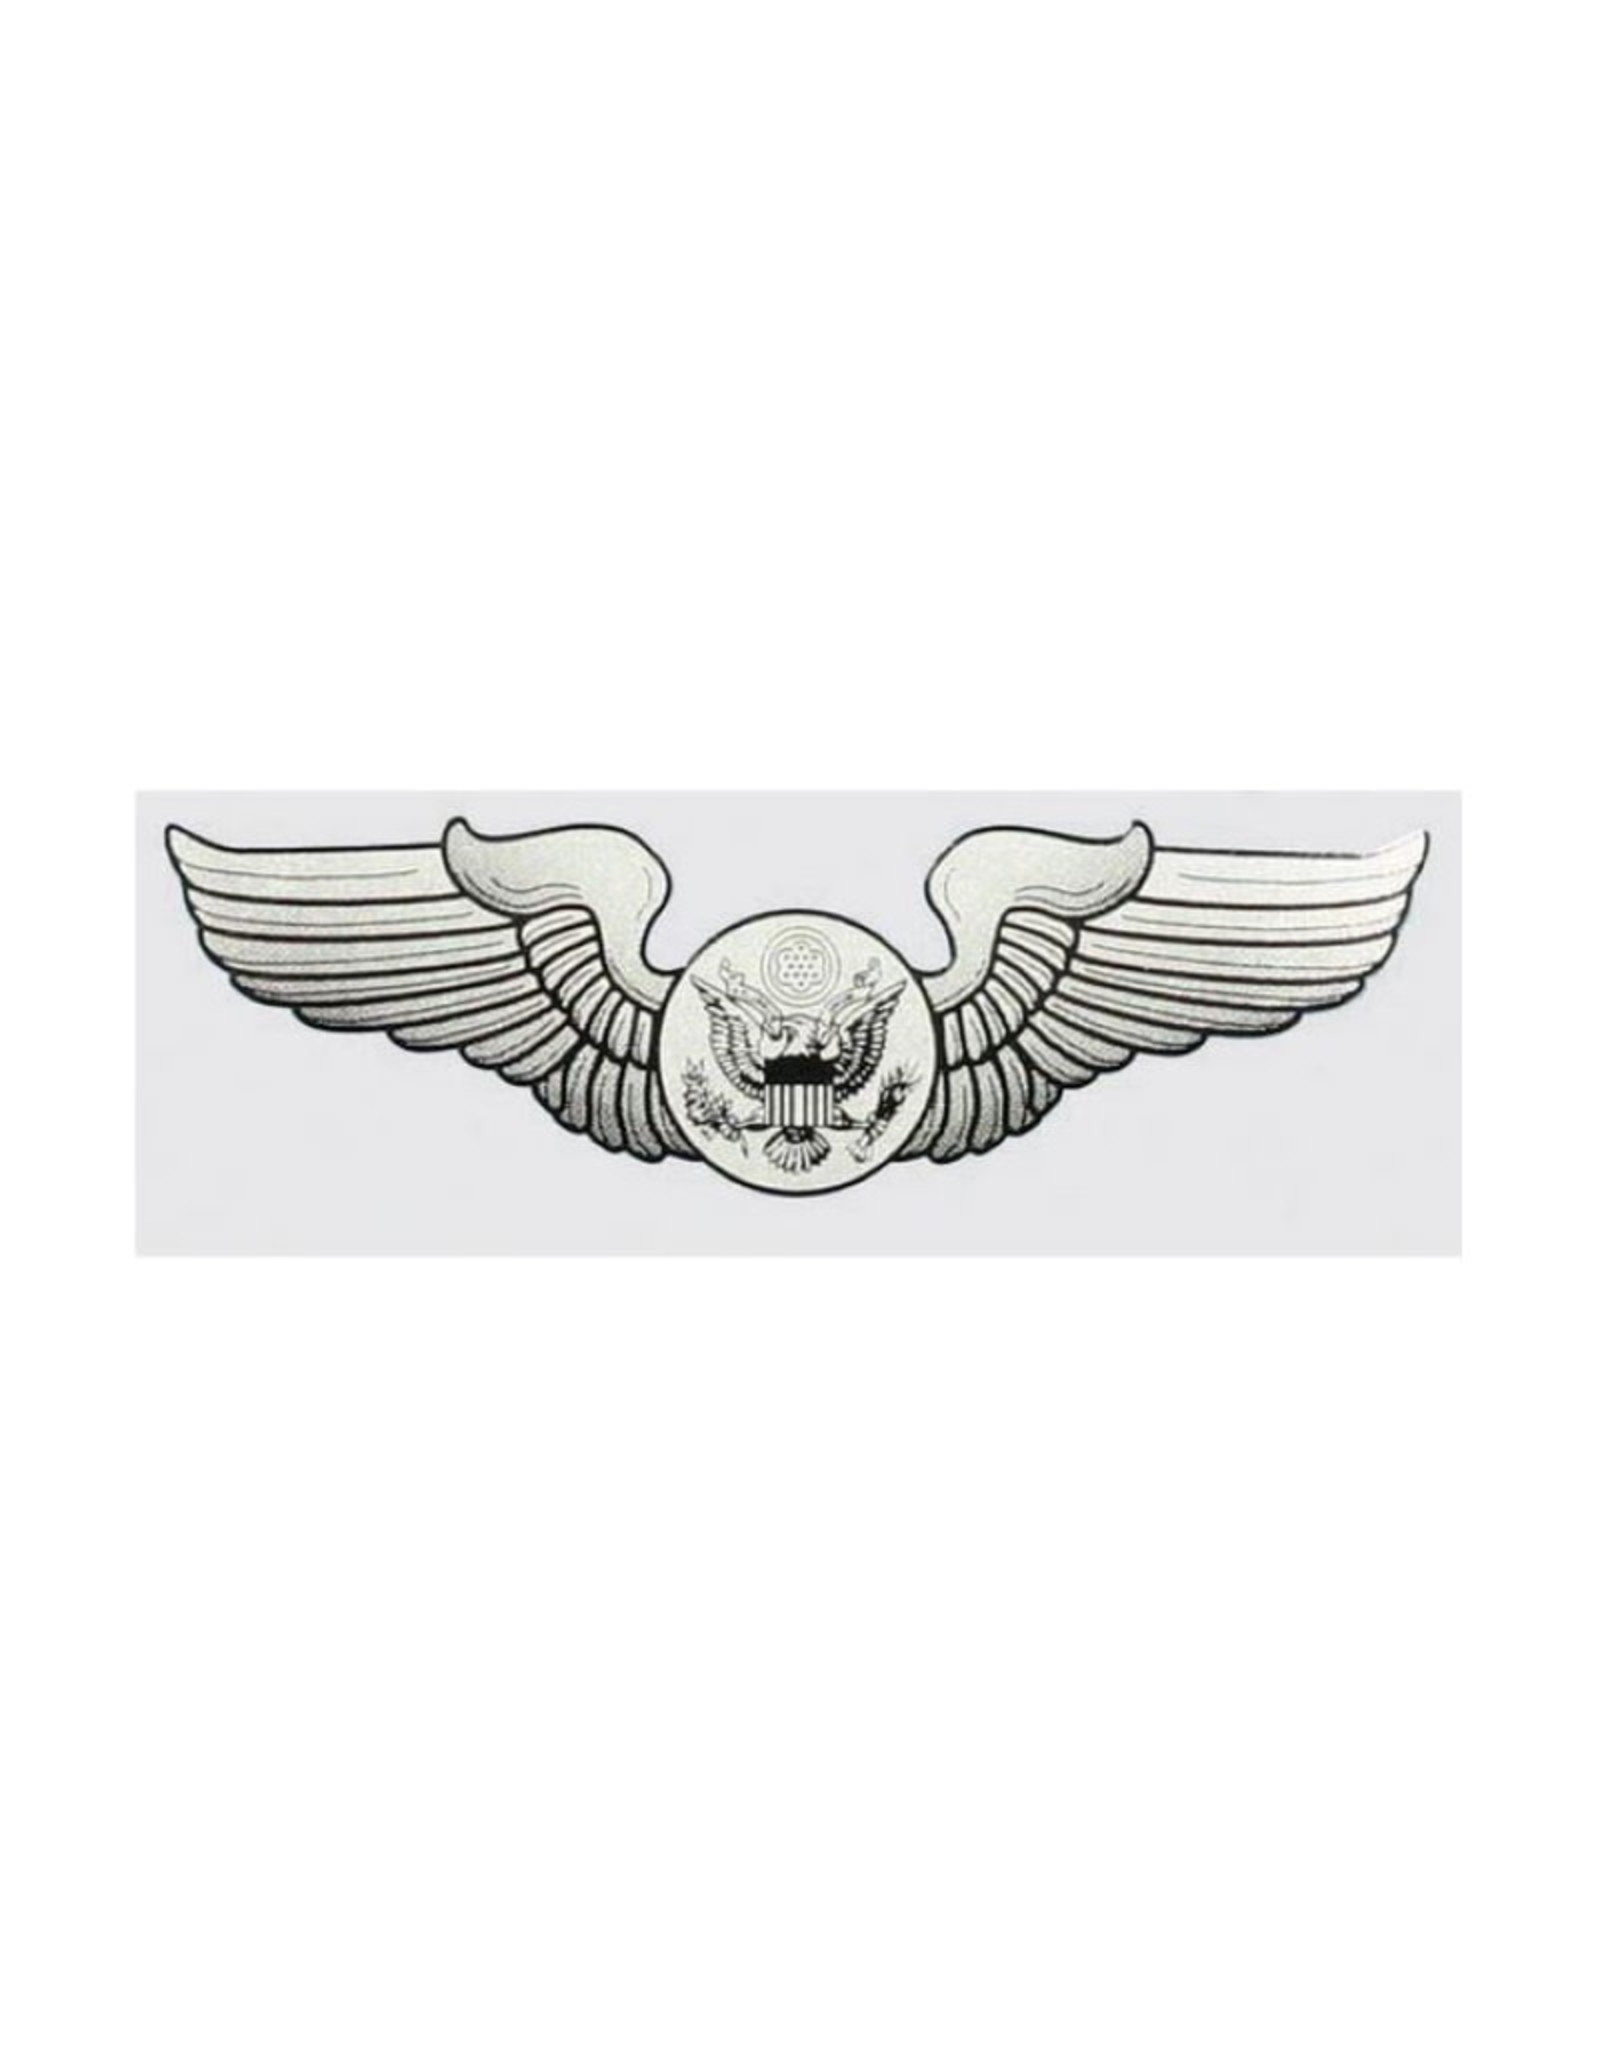 """MidMil Air Force Aircrew Wings Decal 5.25"""" wide x 1.5"""" high"""